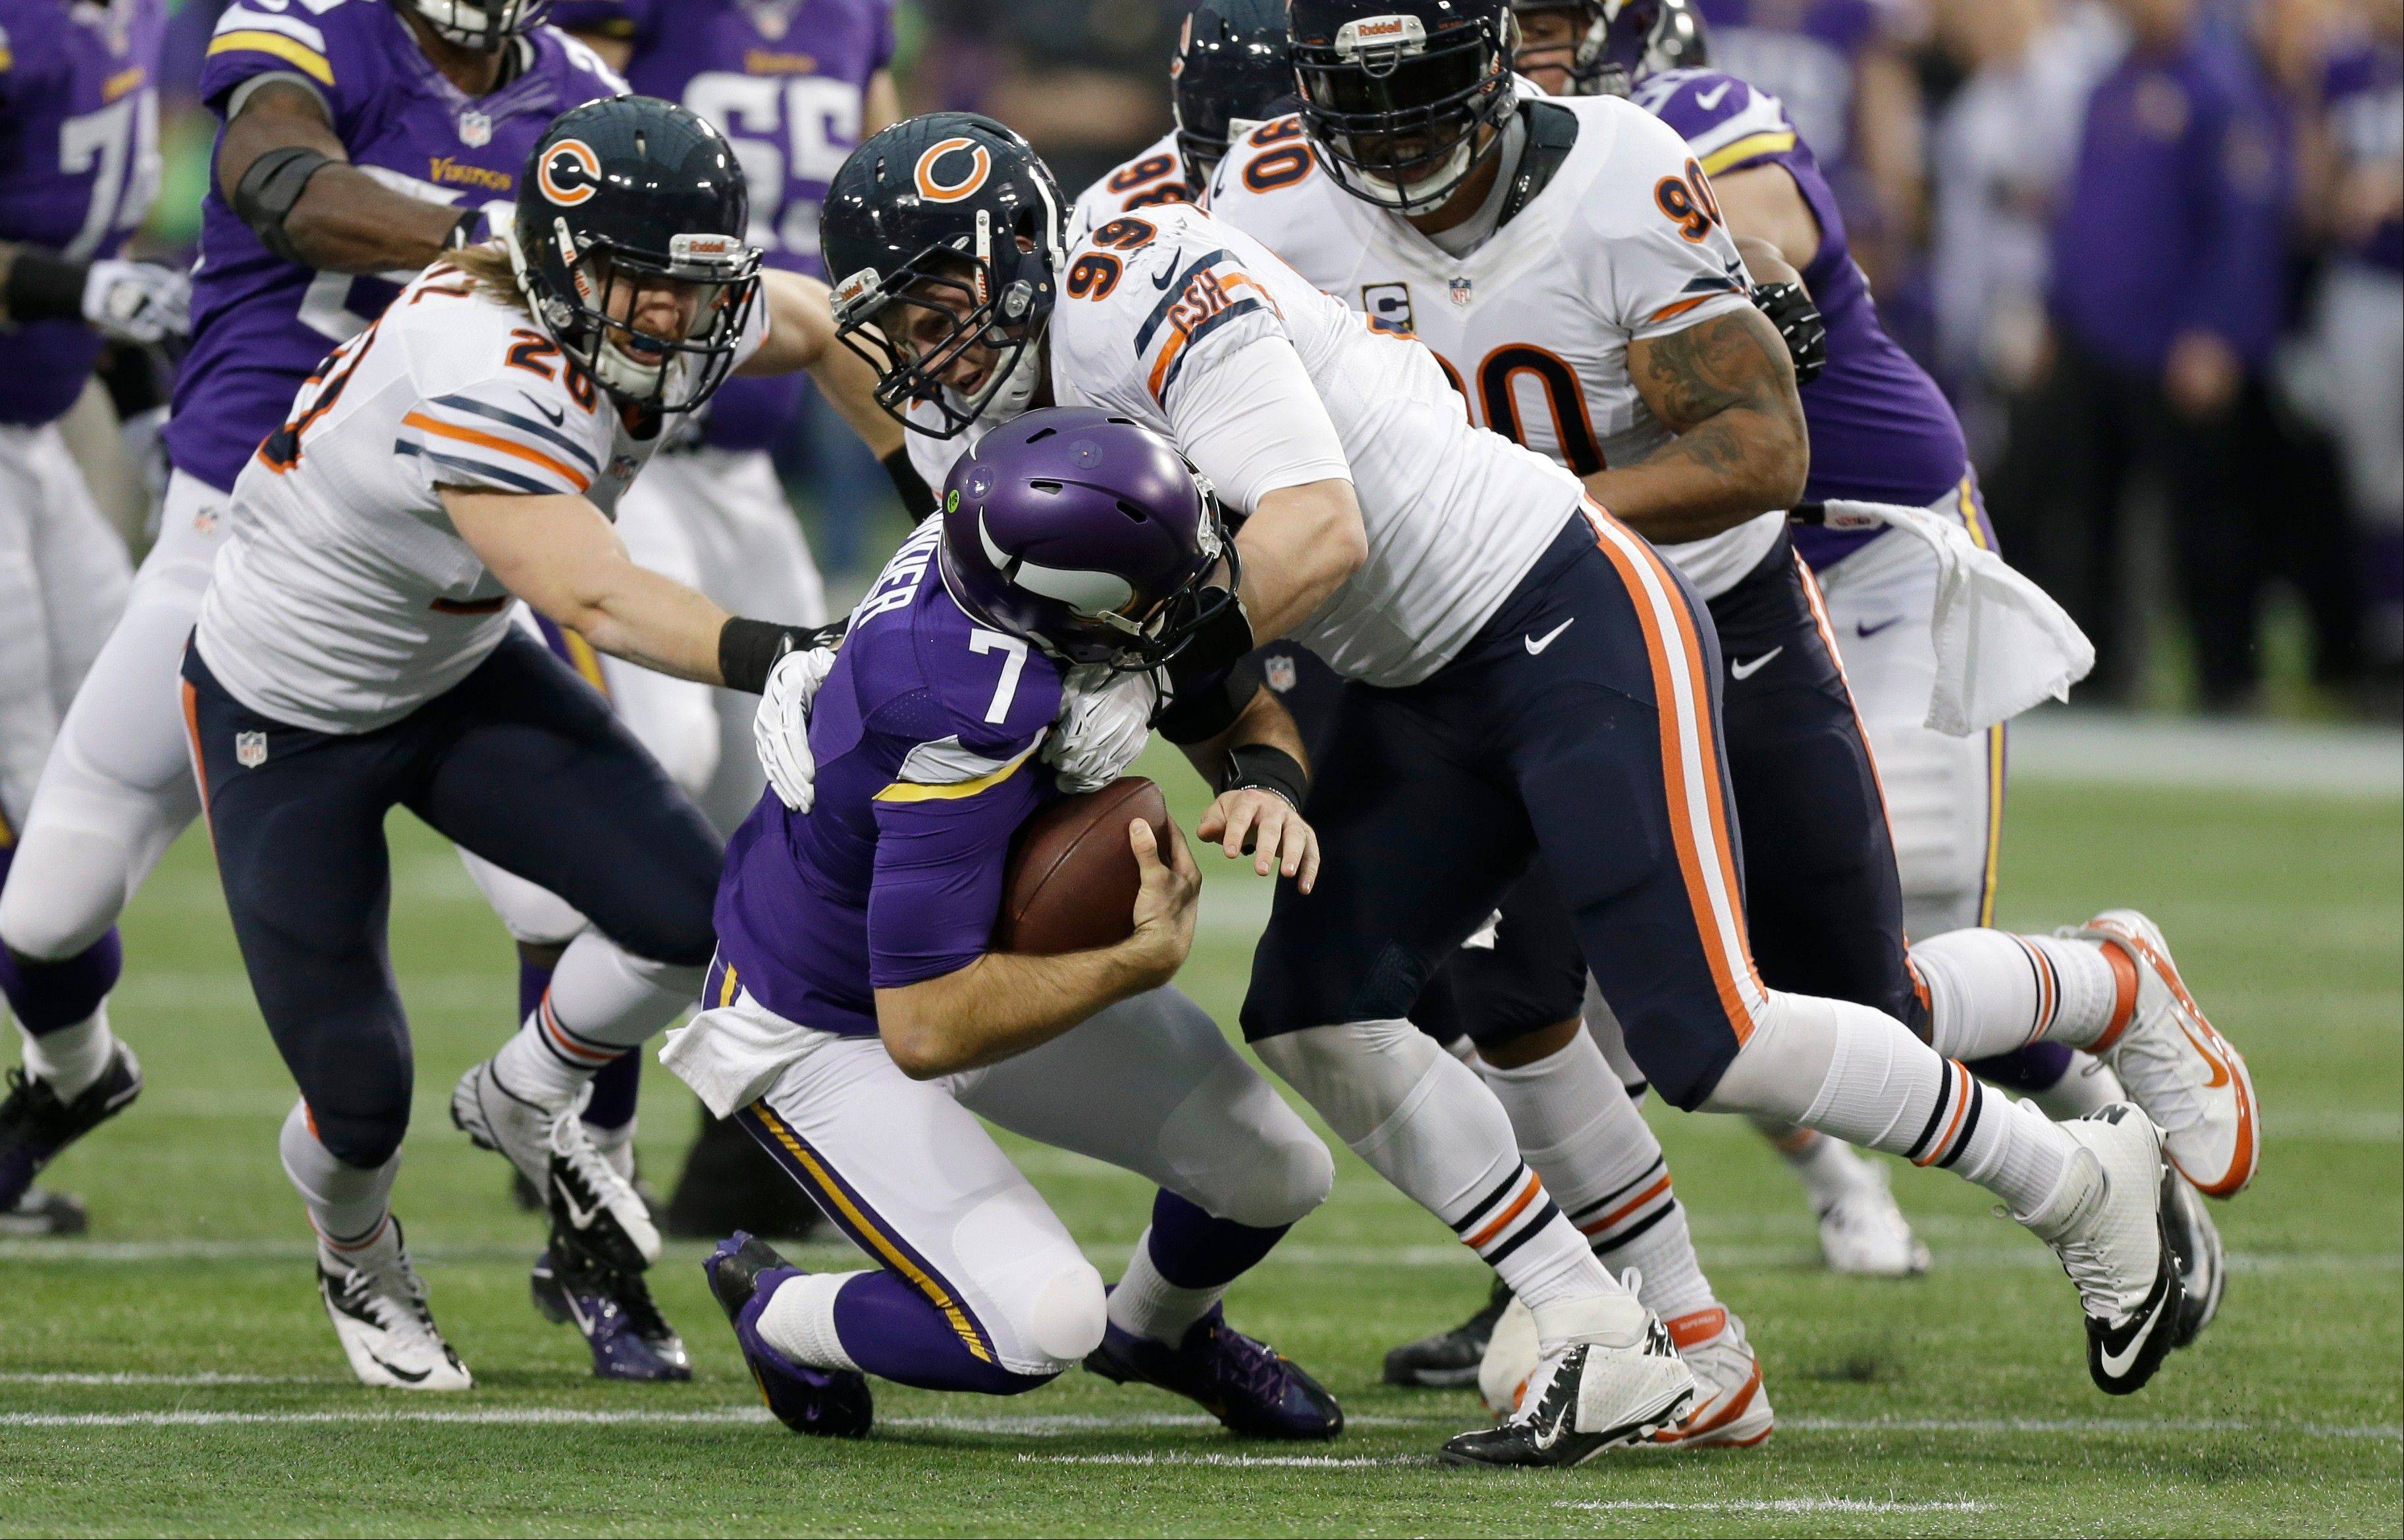 Minnesota Vikings quarterback Christian Ponder (7) is sacked by Chicago Bears defensive end Shea McClellin, right, and strong safety Craig Steltz, left, during the first half.